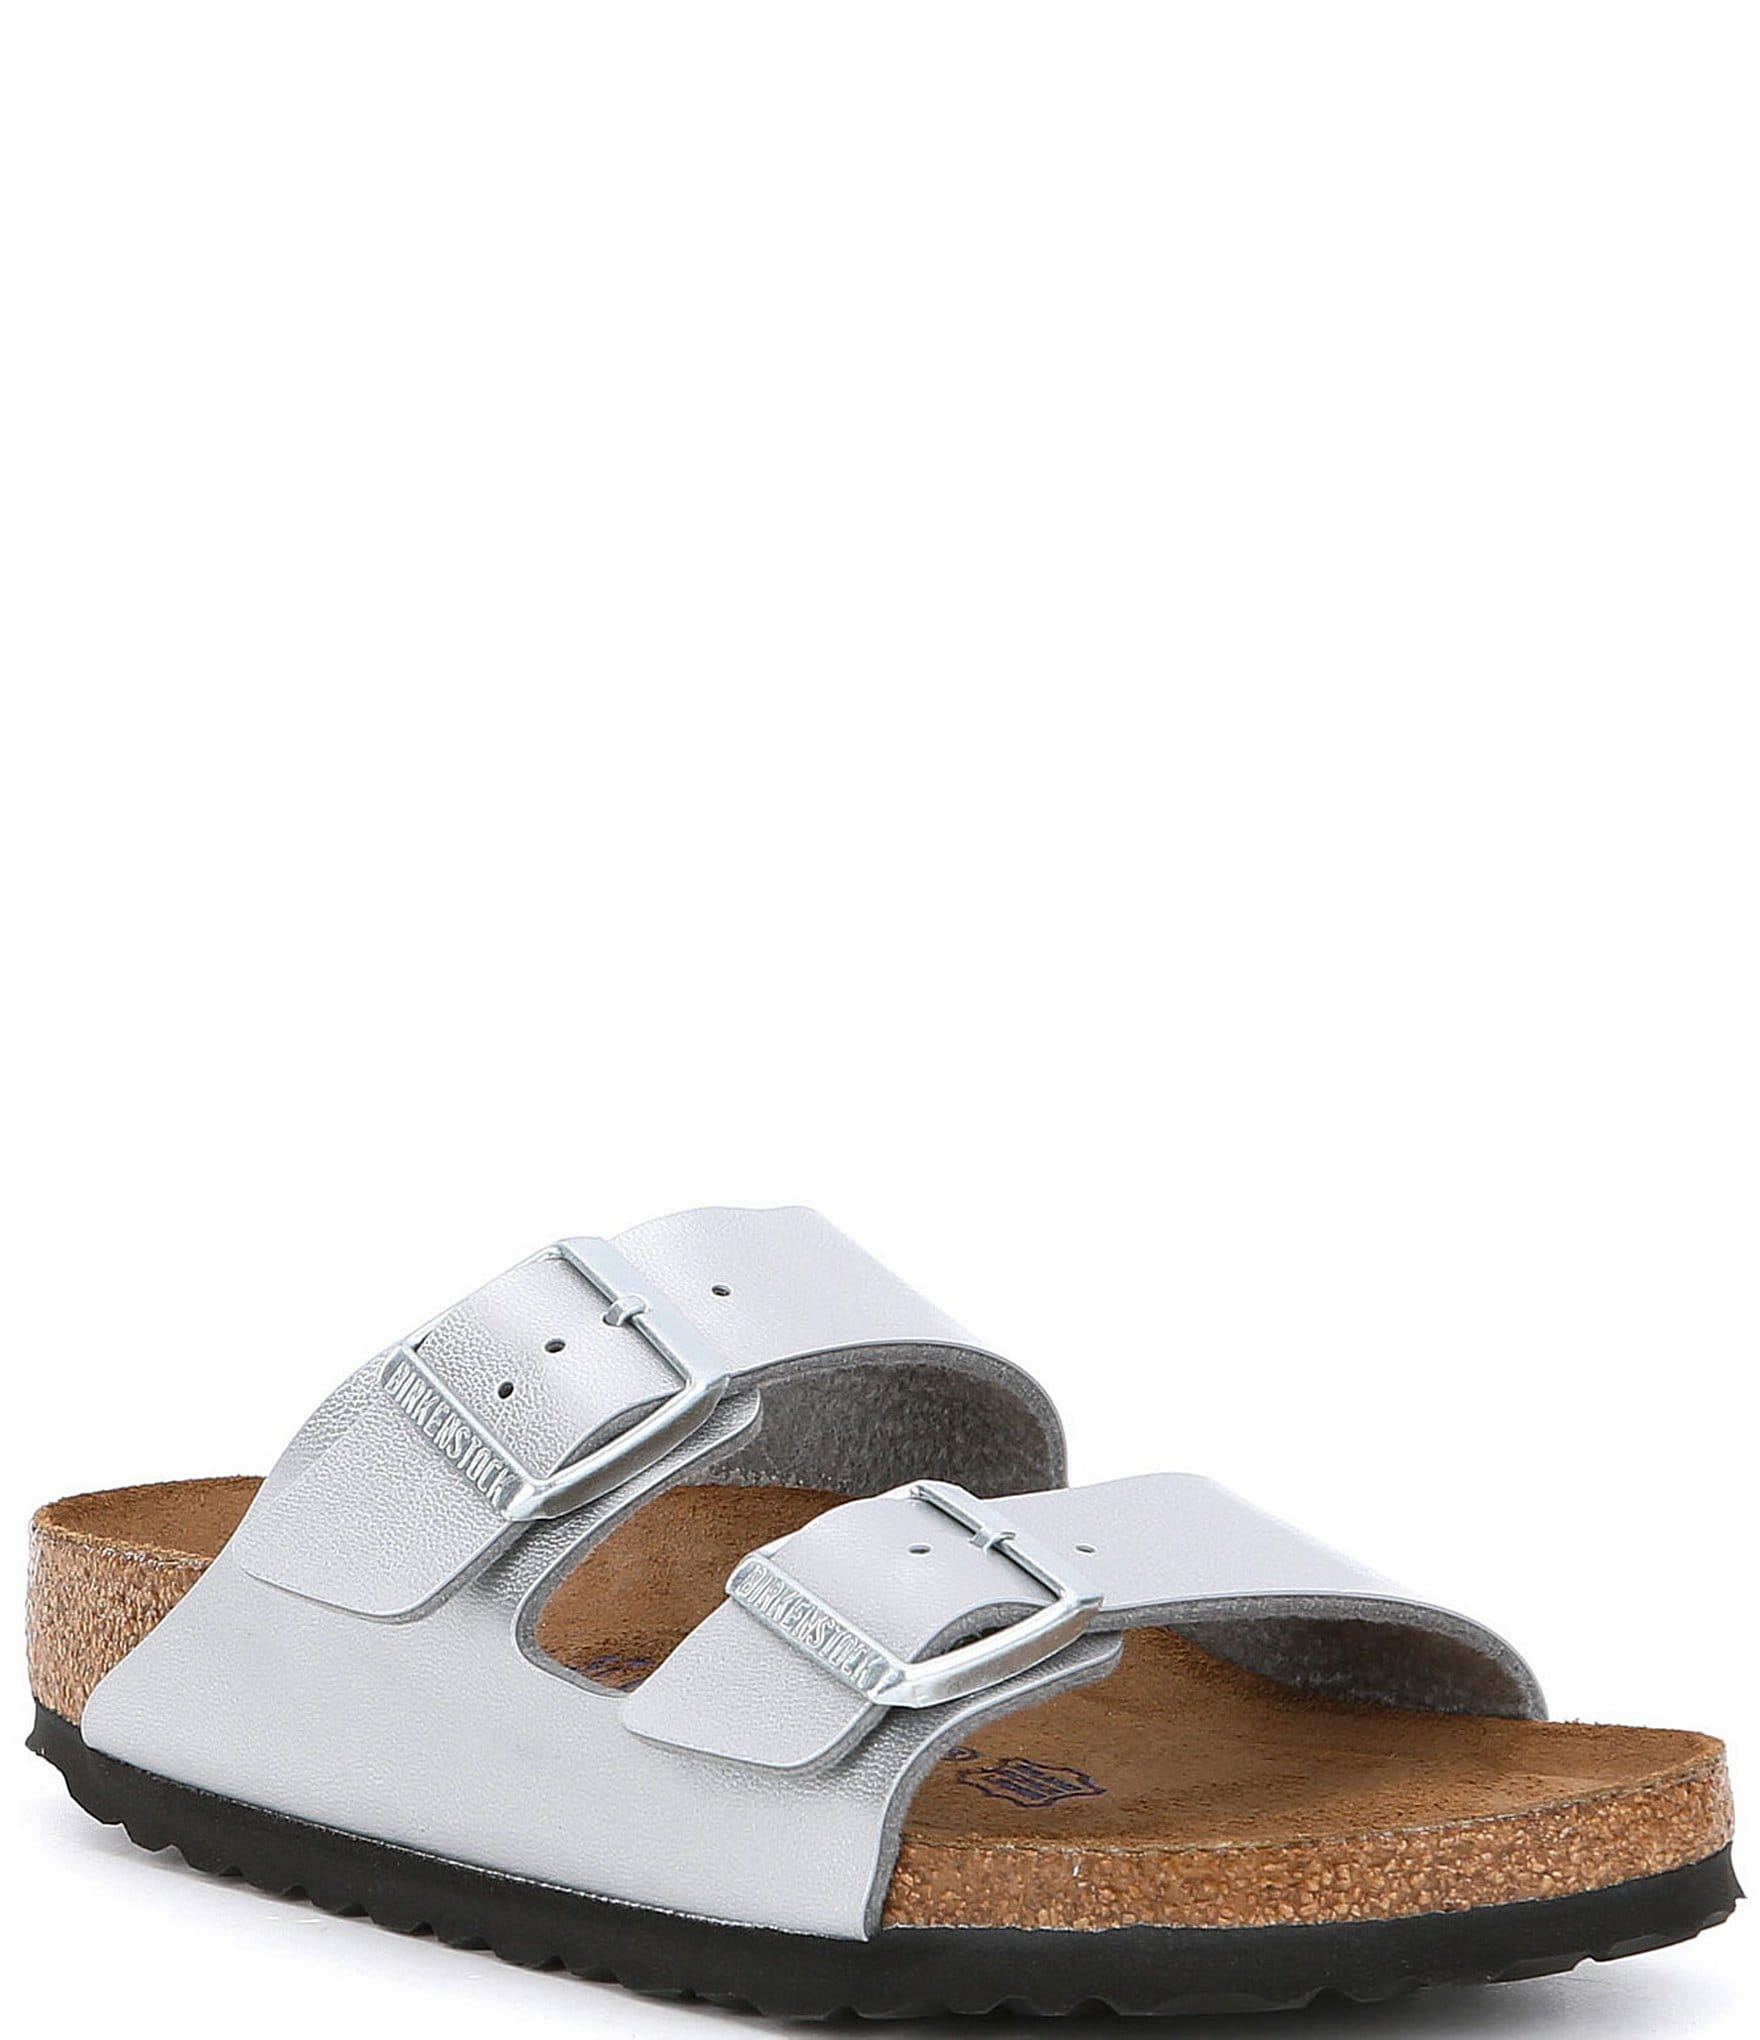 Larina Slide Sandals E7hGclZ